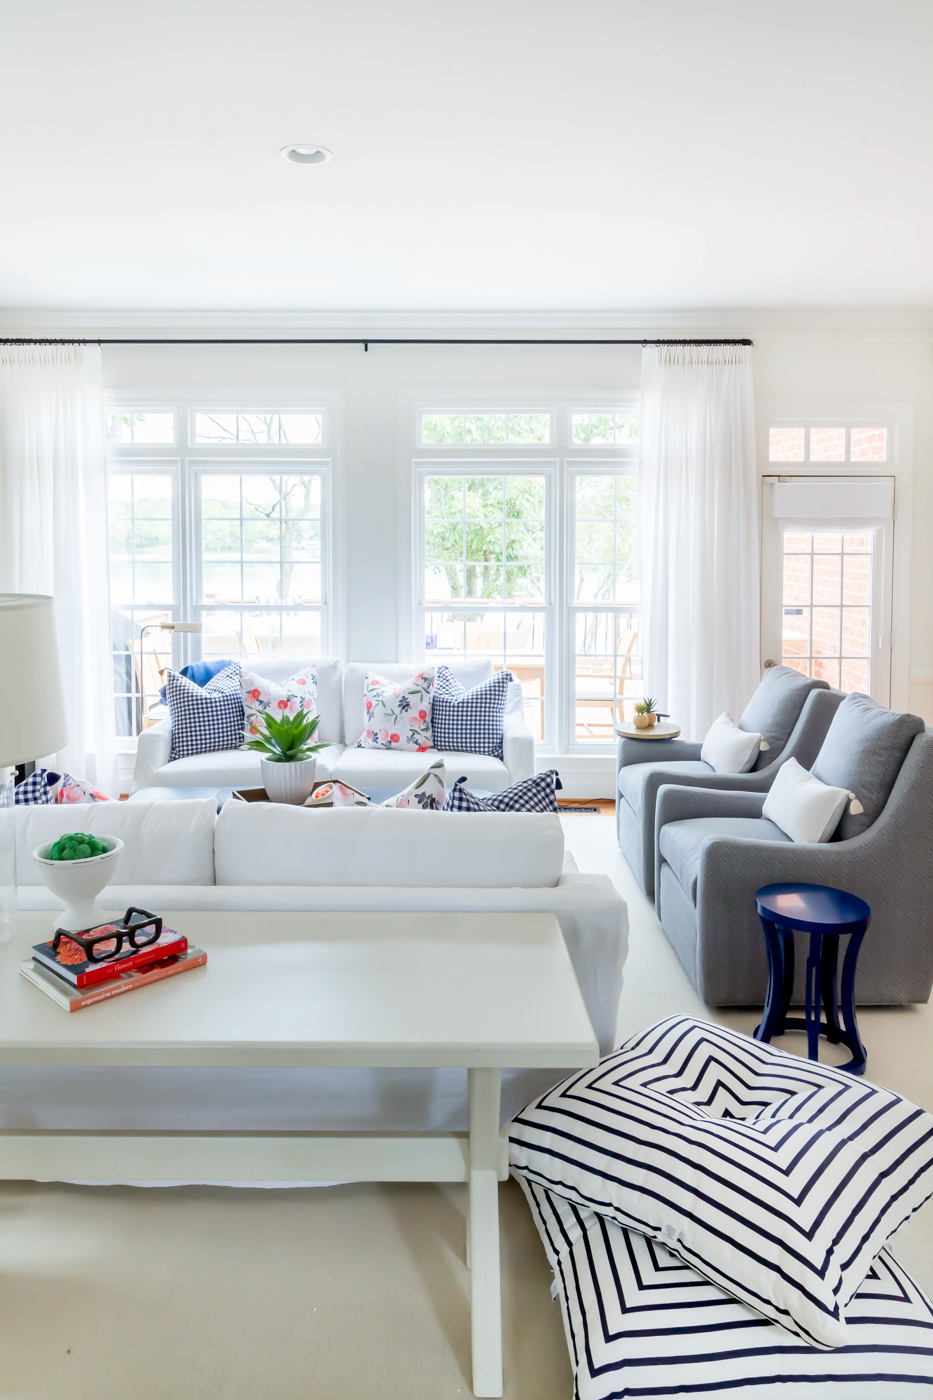 Eclectic Home Tour - a white living room gets pops of color from textiles #livingroom #neutraldecor #lakehouse